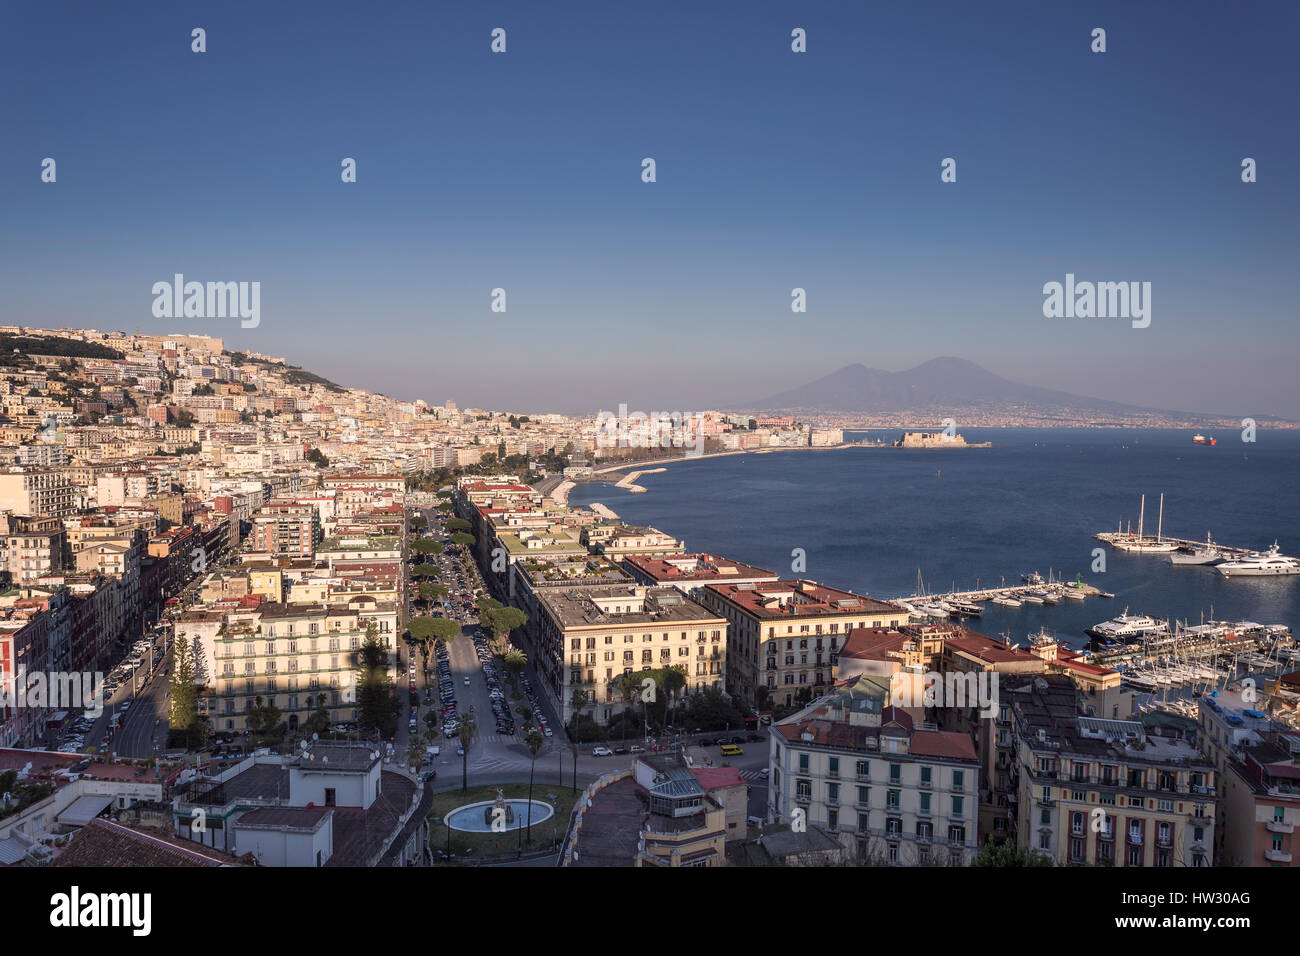 Naples and the Gulf of Naples with Mount Vesuvius in the background, seen from Mergellina, Italy. - Stock Image